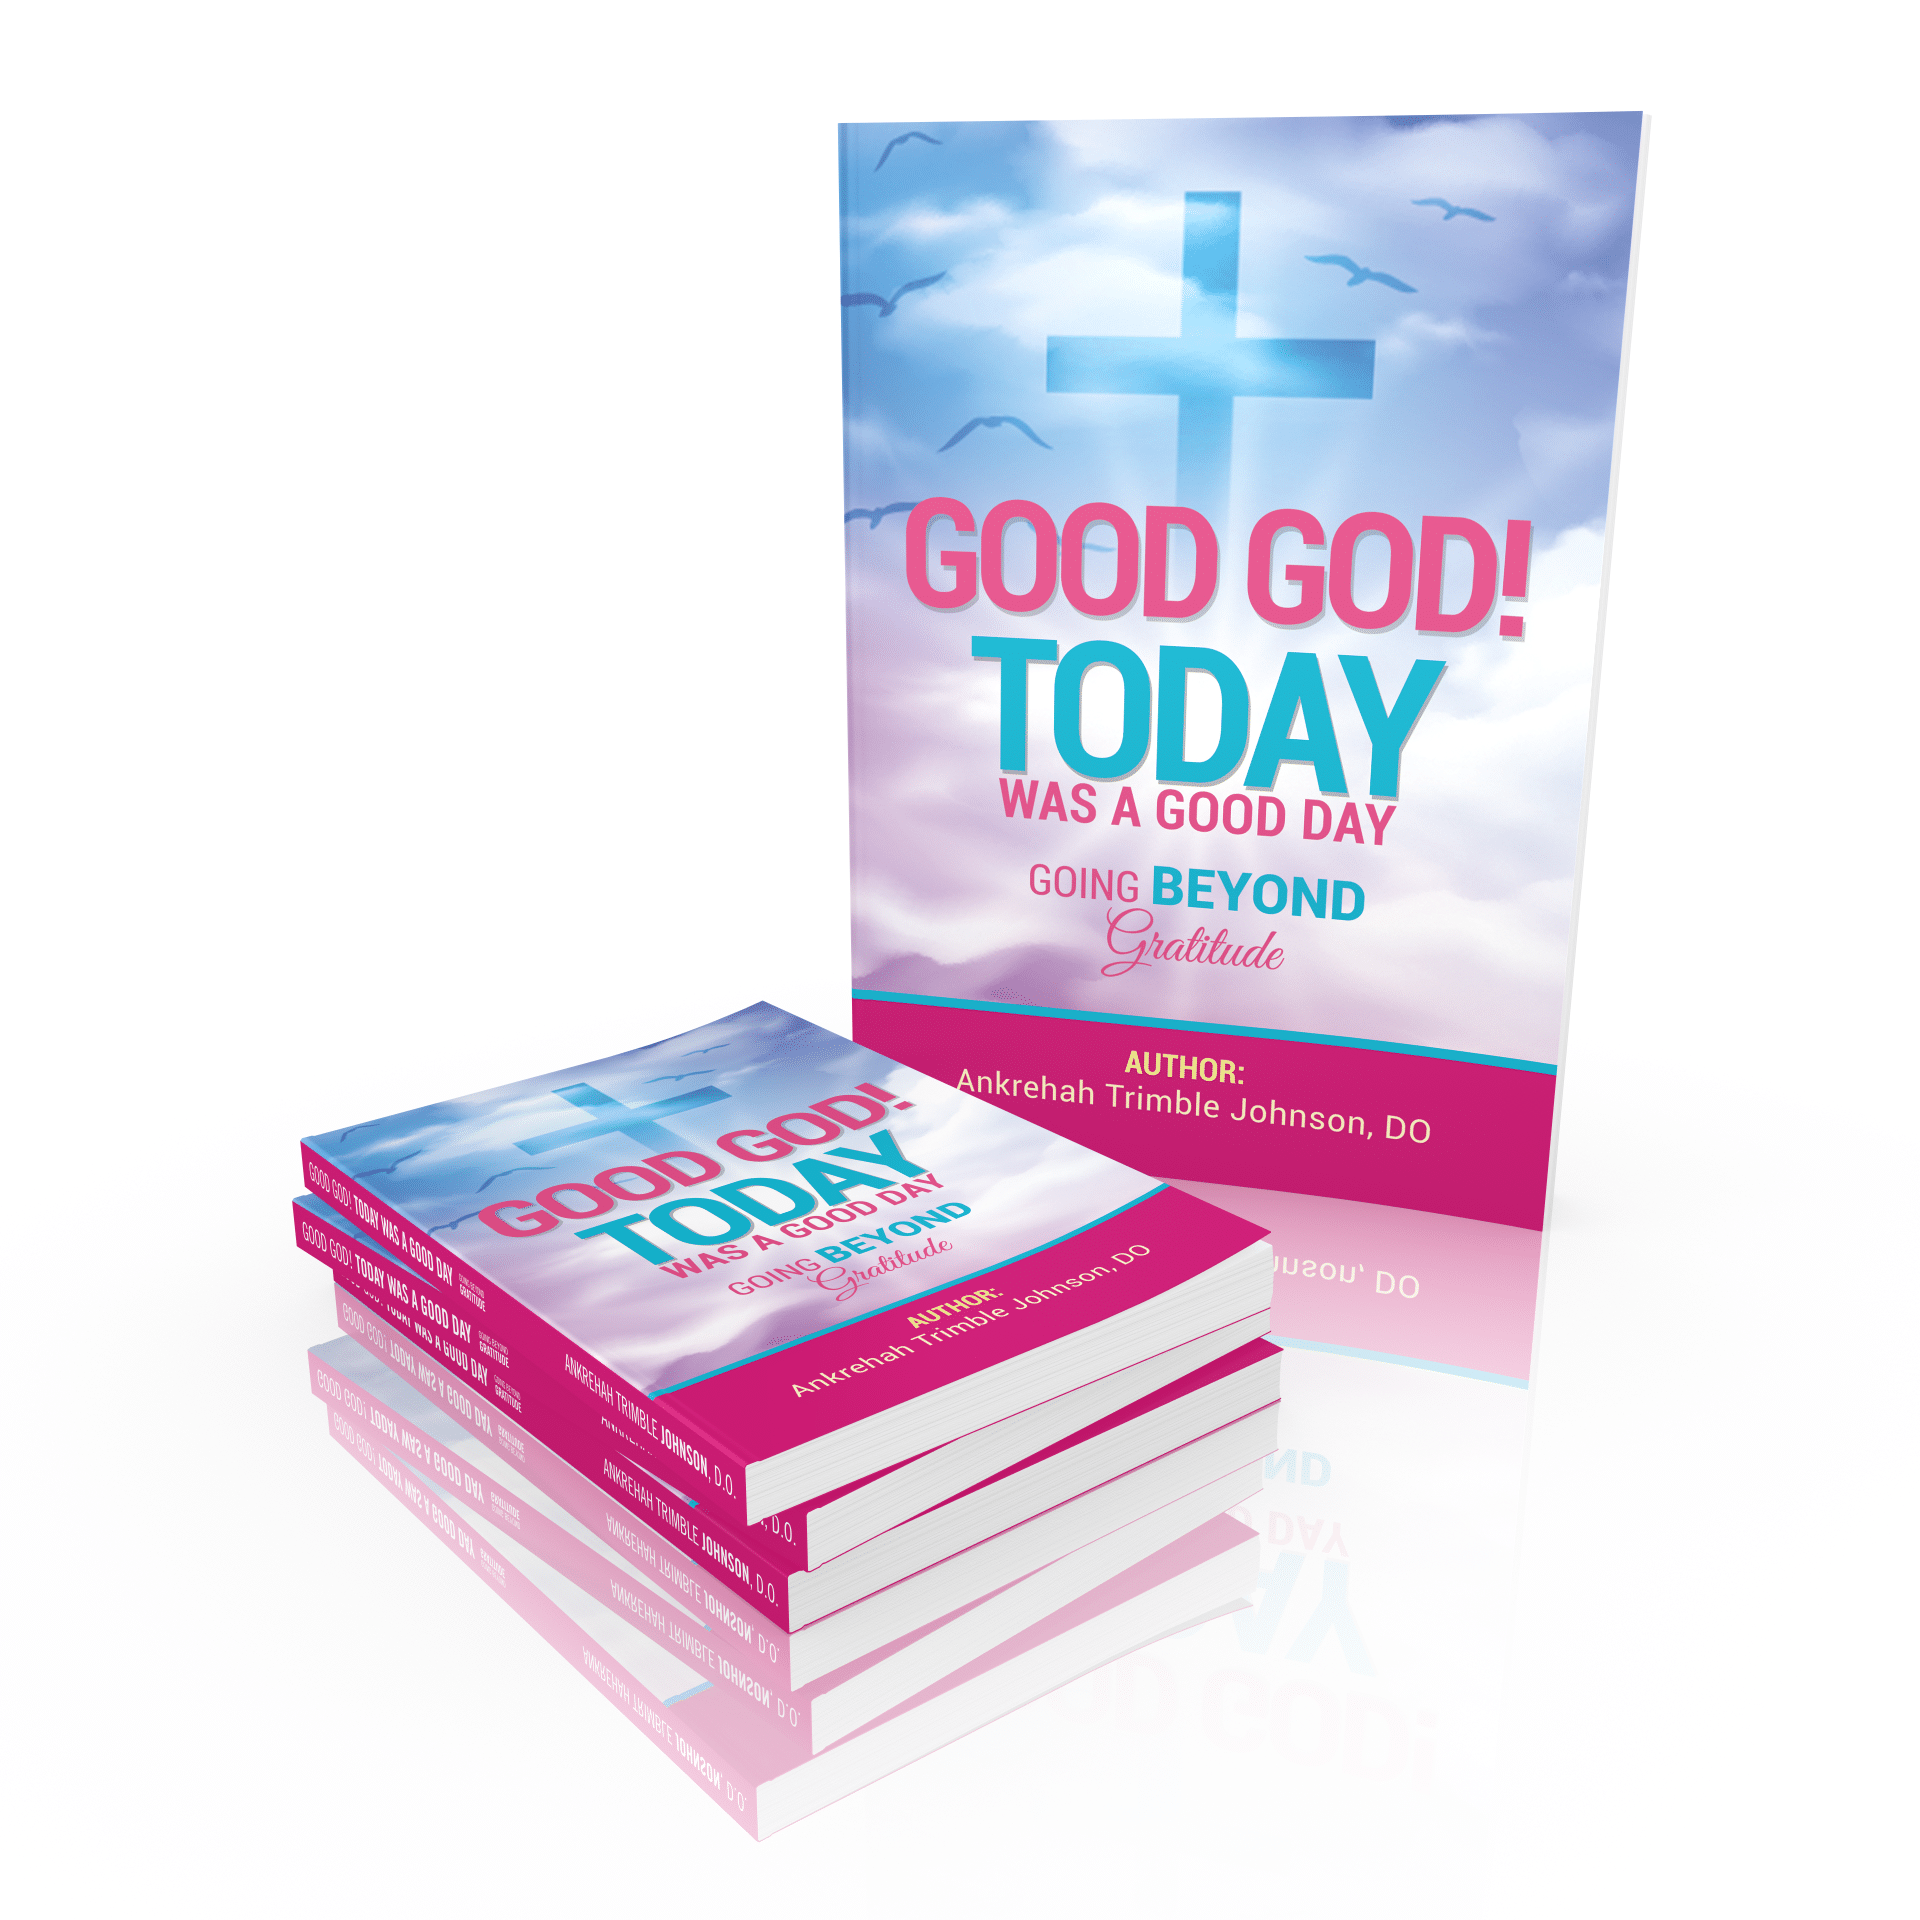 Good God! Today was a good day! By Dr. Ankrehah Trimble Johnson, D.O.